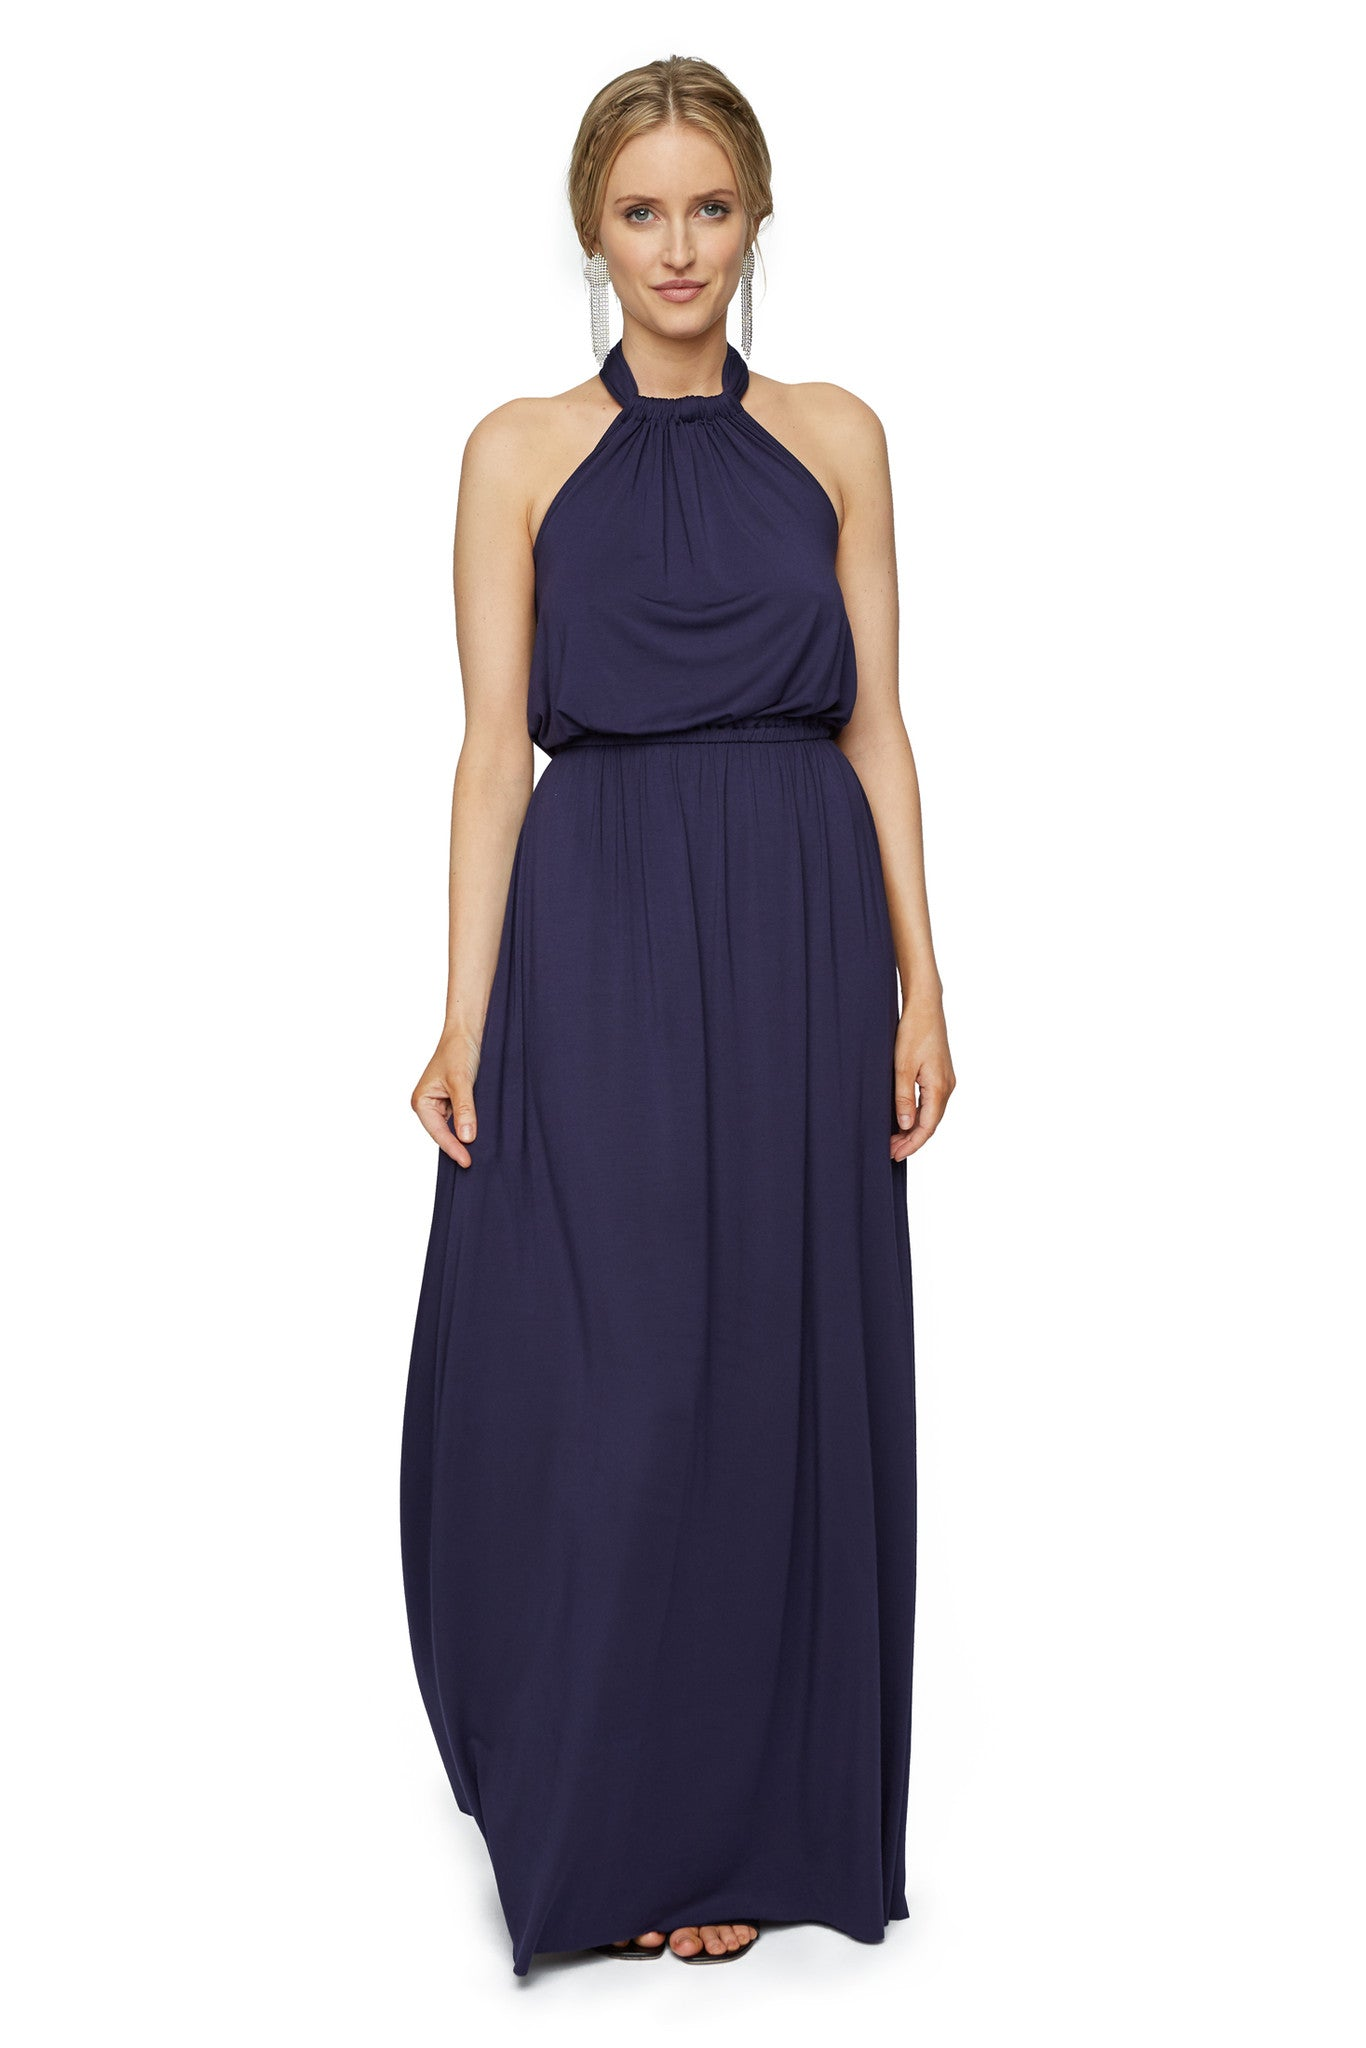 Aleksa Dress - Nightfall